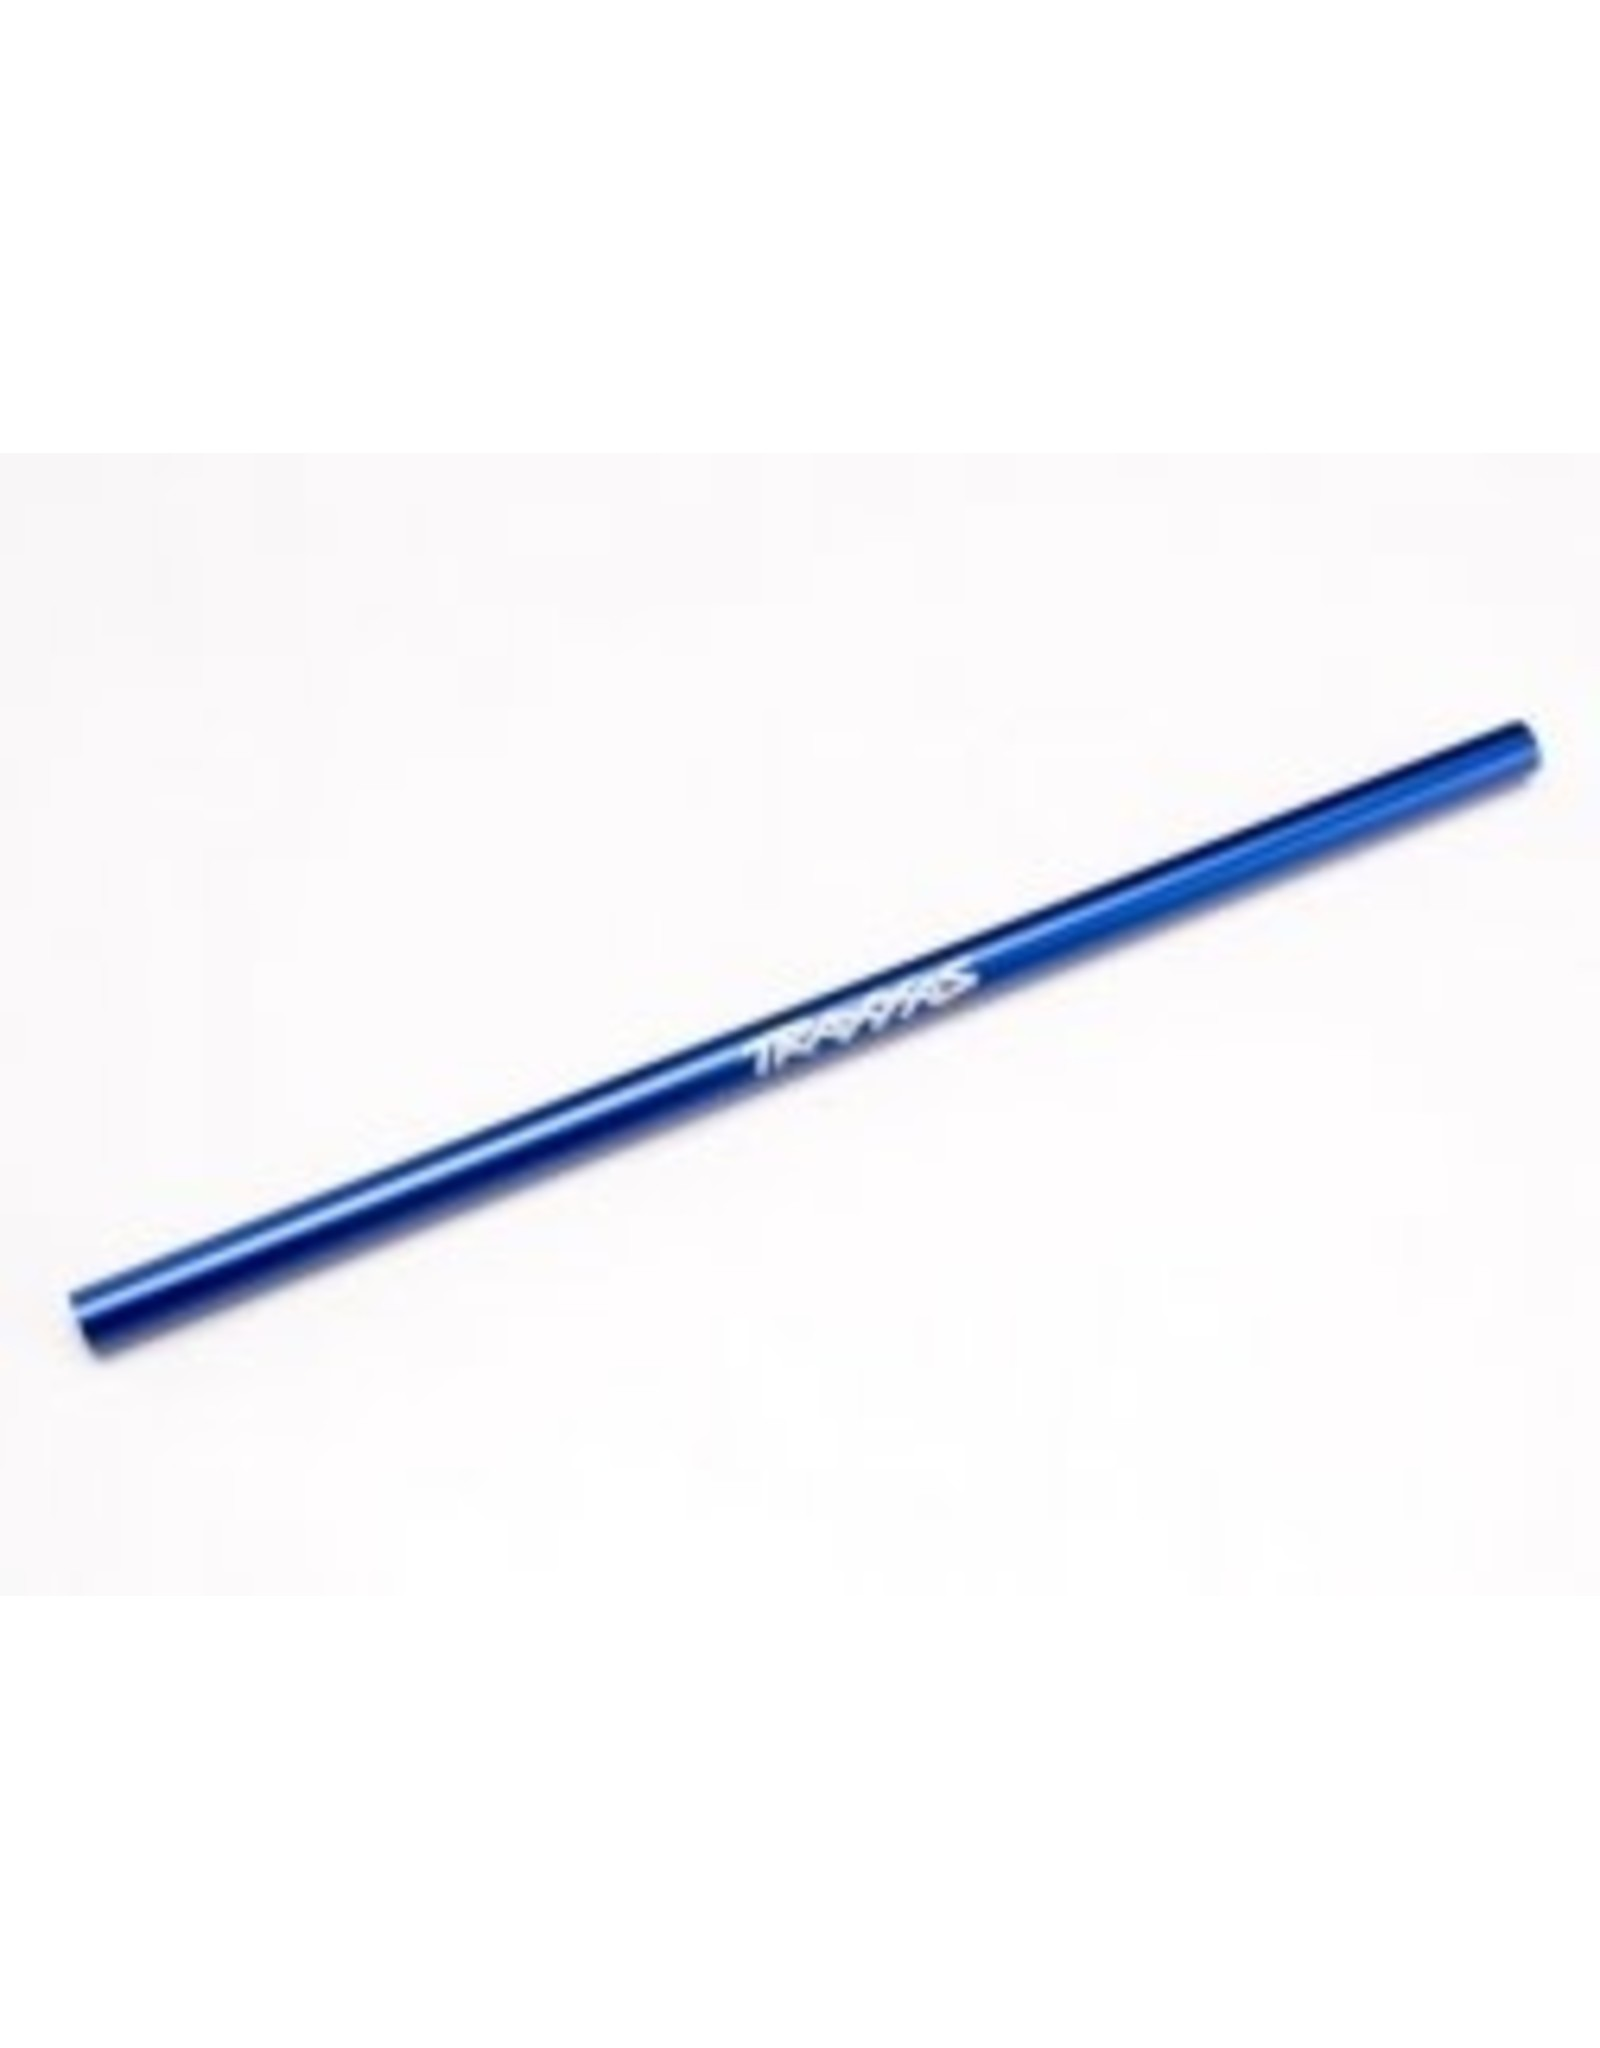 Traxxas [Driveshaft, center, 6061-T6 aluminum (blue-anodized)] Driveshaft, center, 6061-T6 aluminum (blue-anodized)